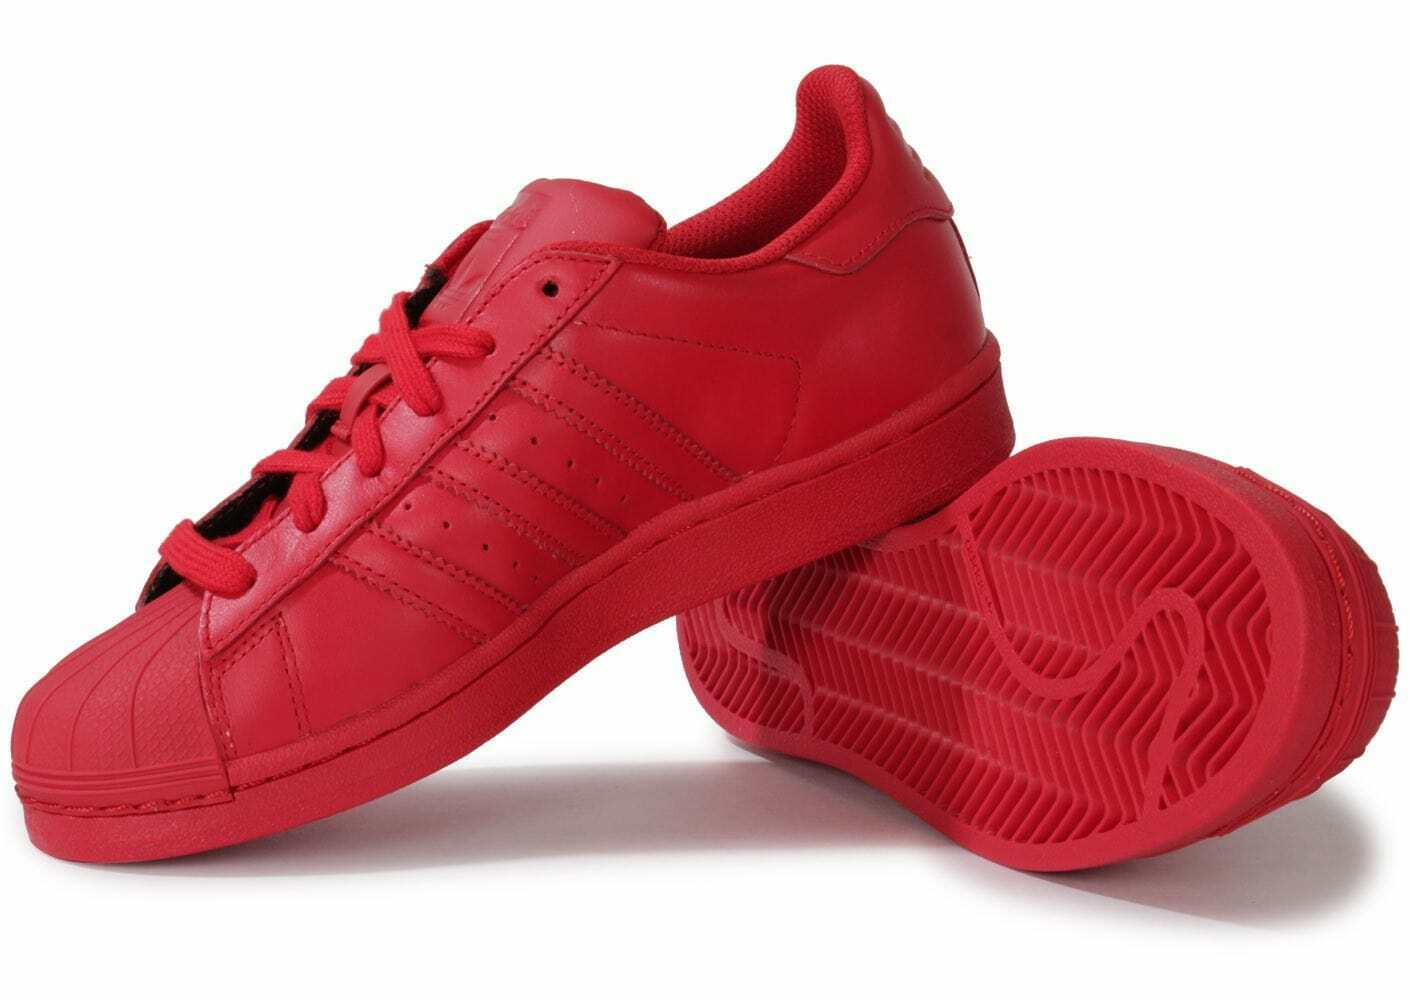 ADIDAS x PHARRELL WILLIAMS SUPERSTAR SUPERCOLOR IN RED SIZE 4.5 MALE